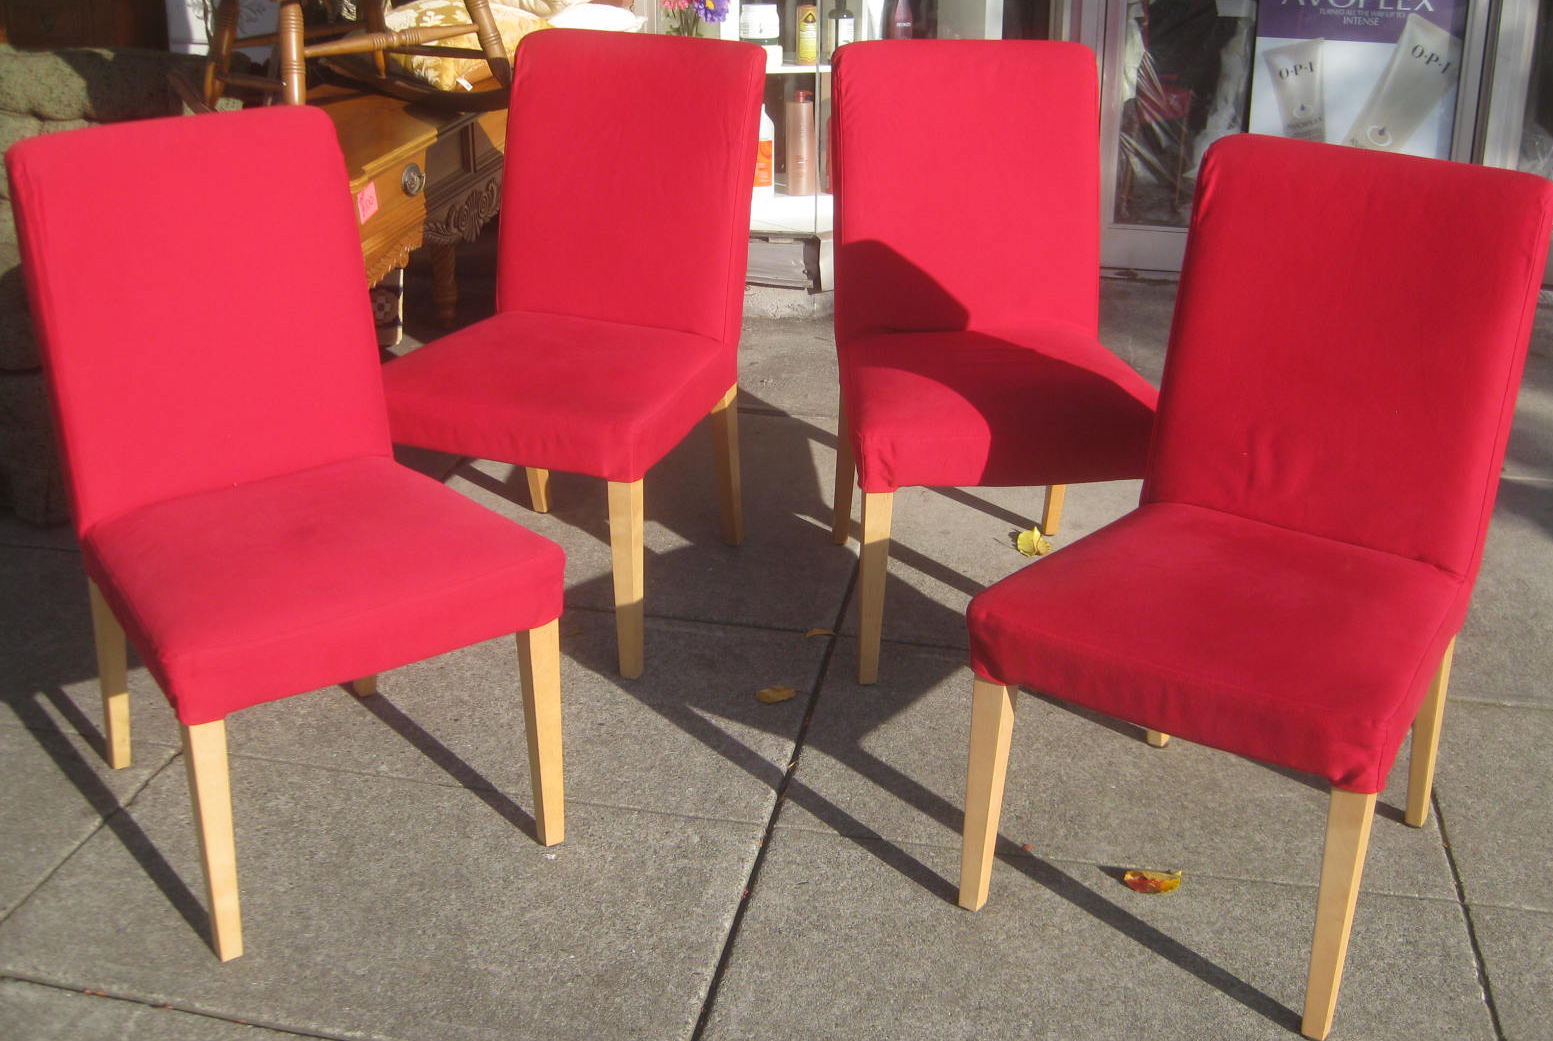 uhuru furniture collectibles sold four red ikea